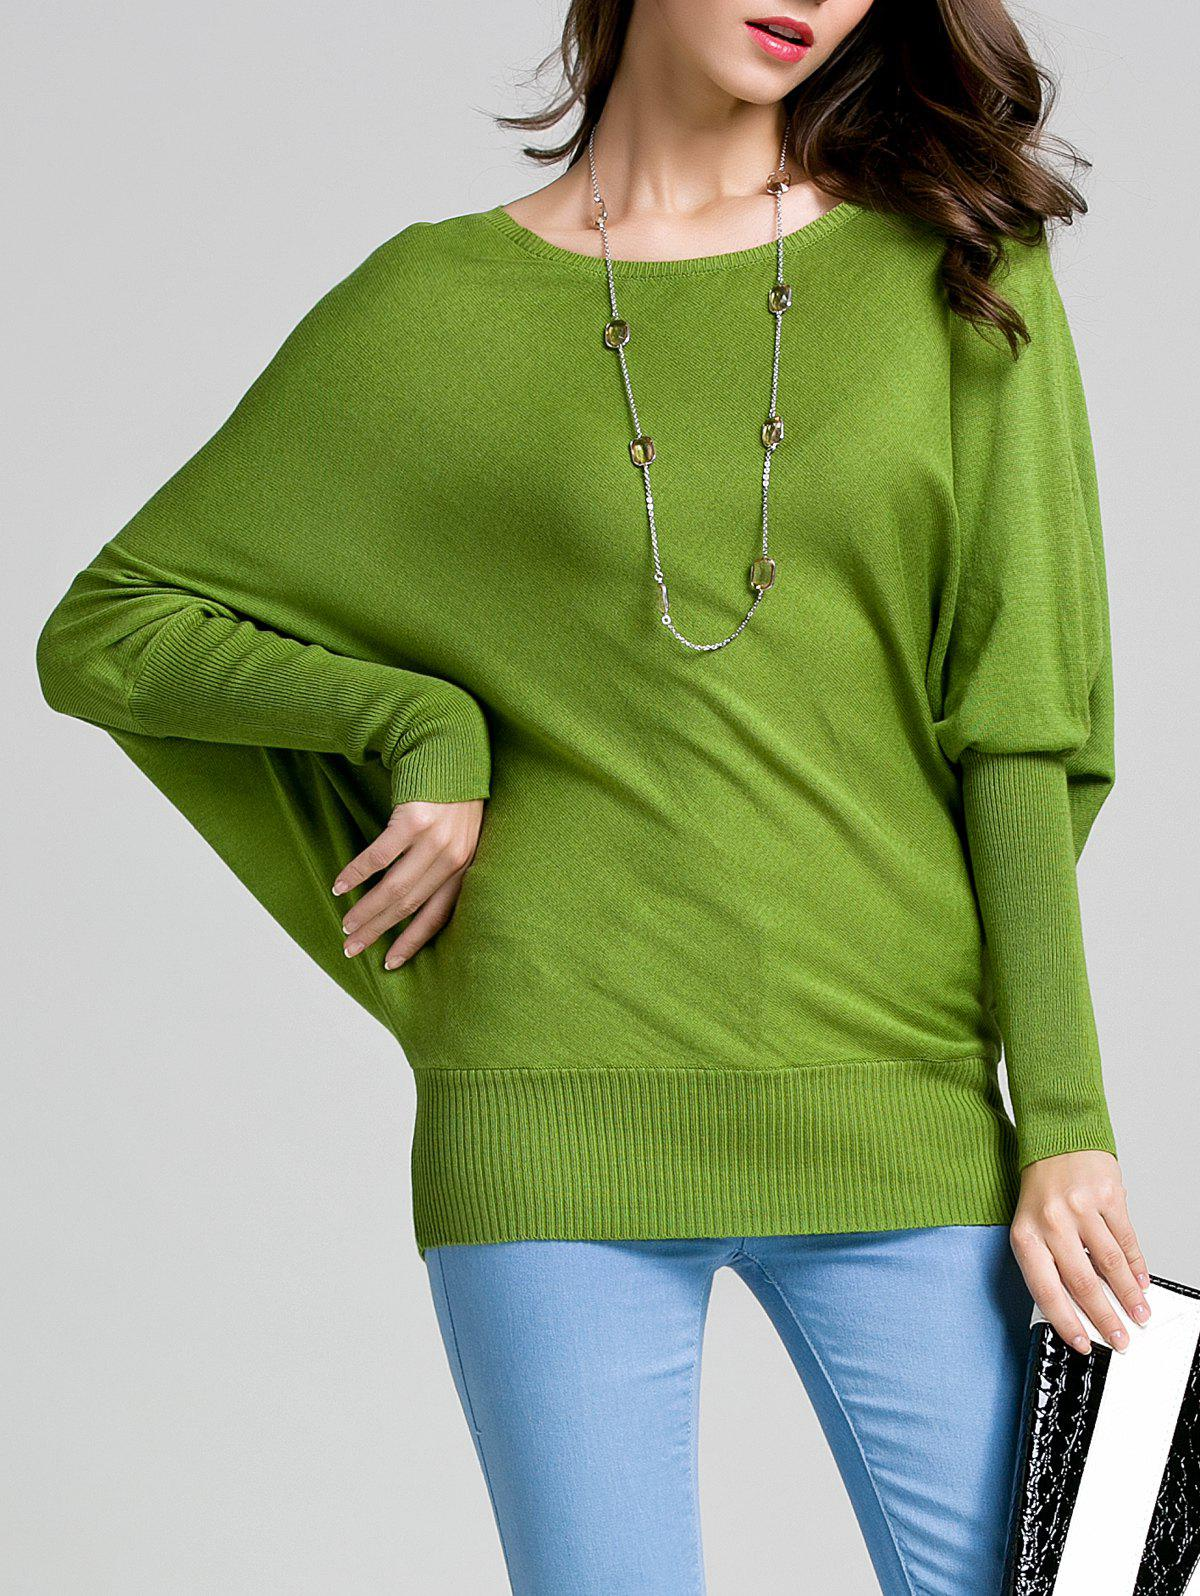 Cheap Round Neck Bat Sleeve Solid Color Sweater